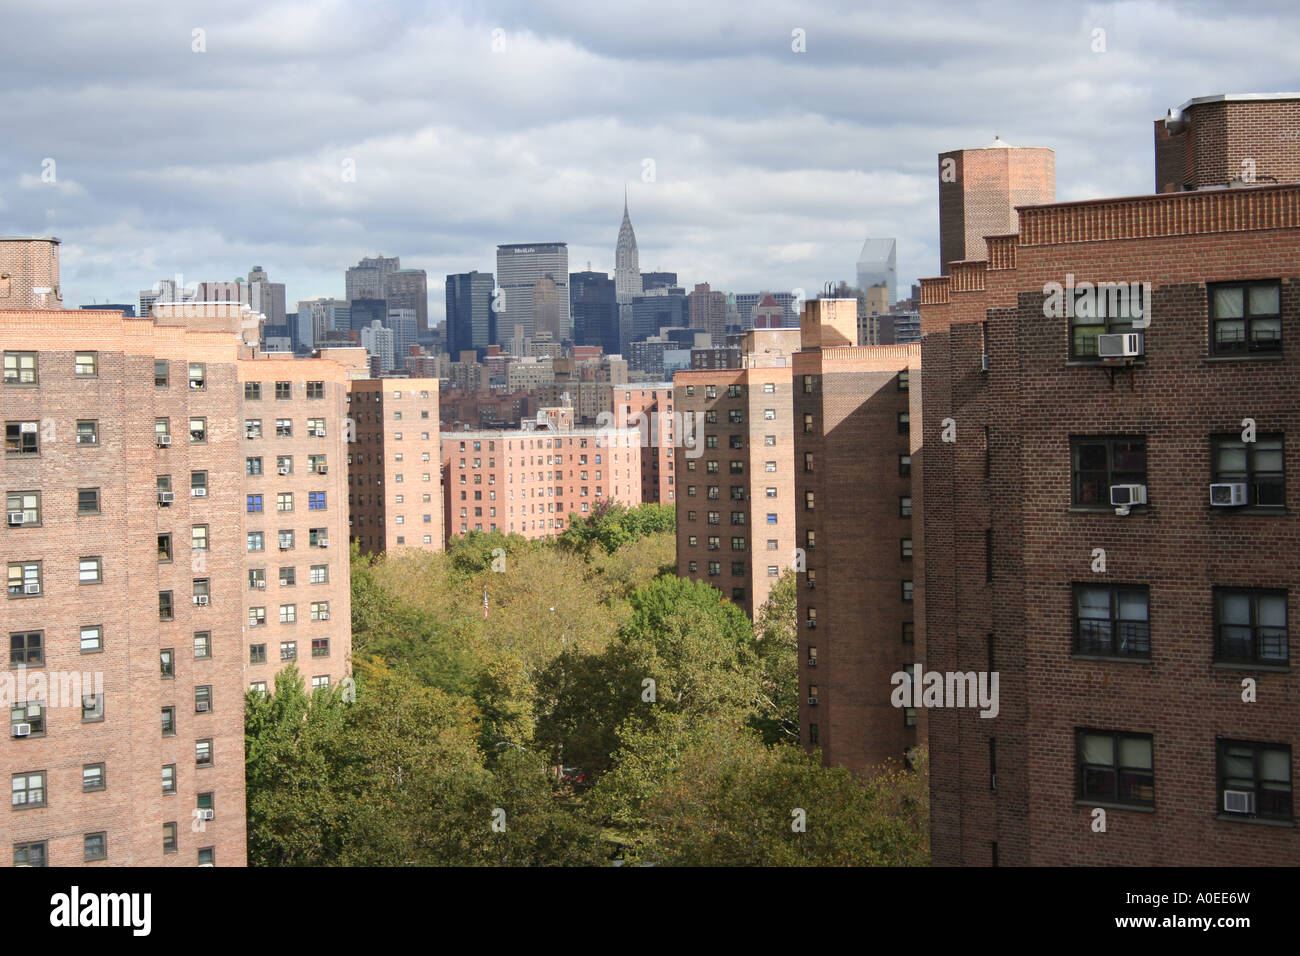 public housing in lower east side with midtown manhattan skyline